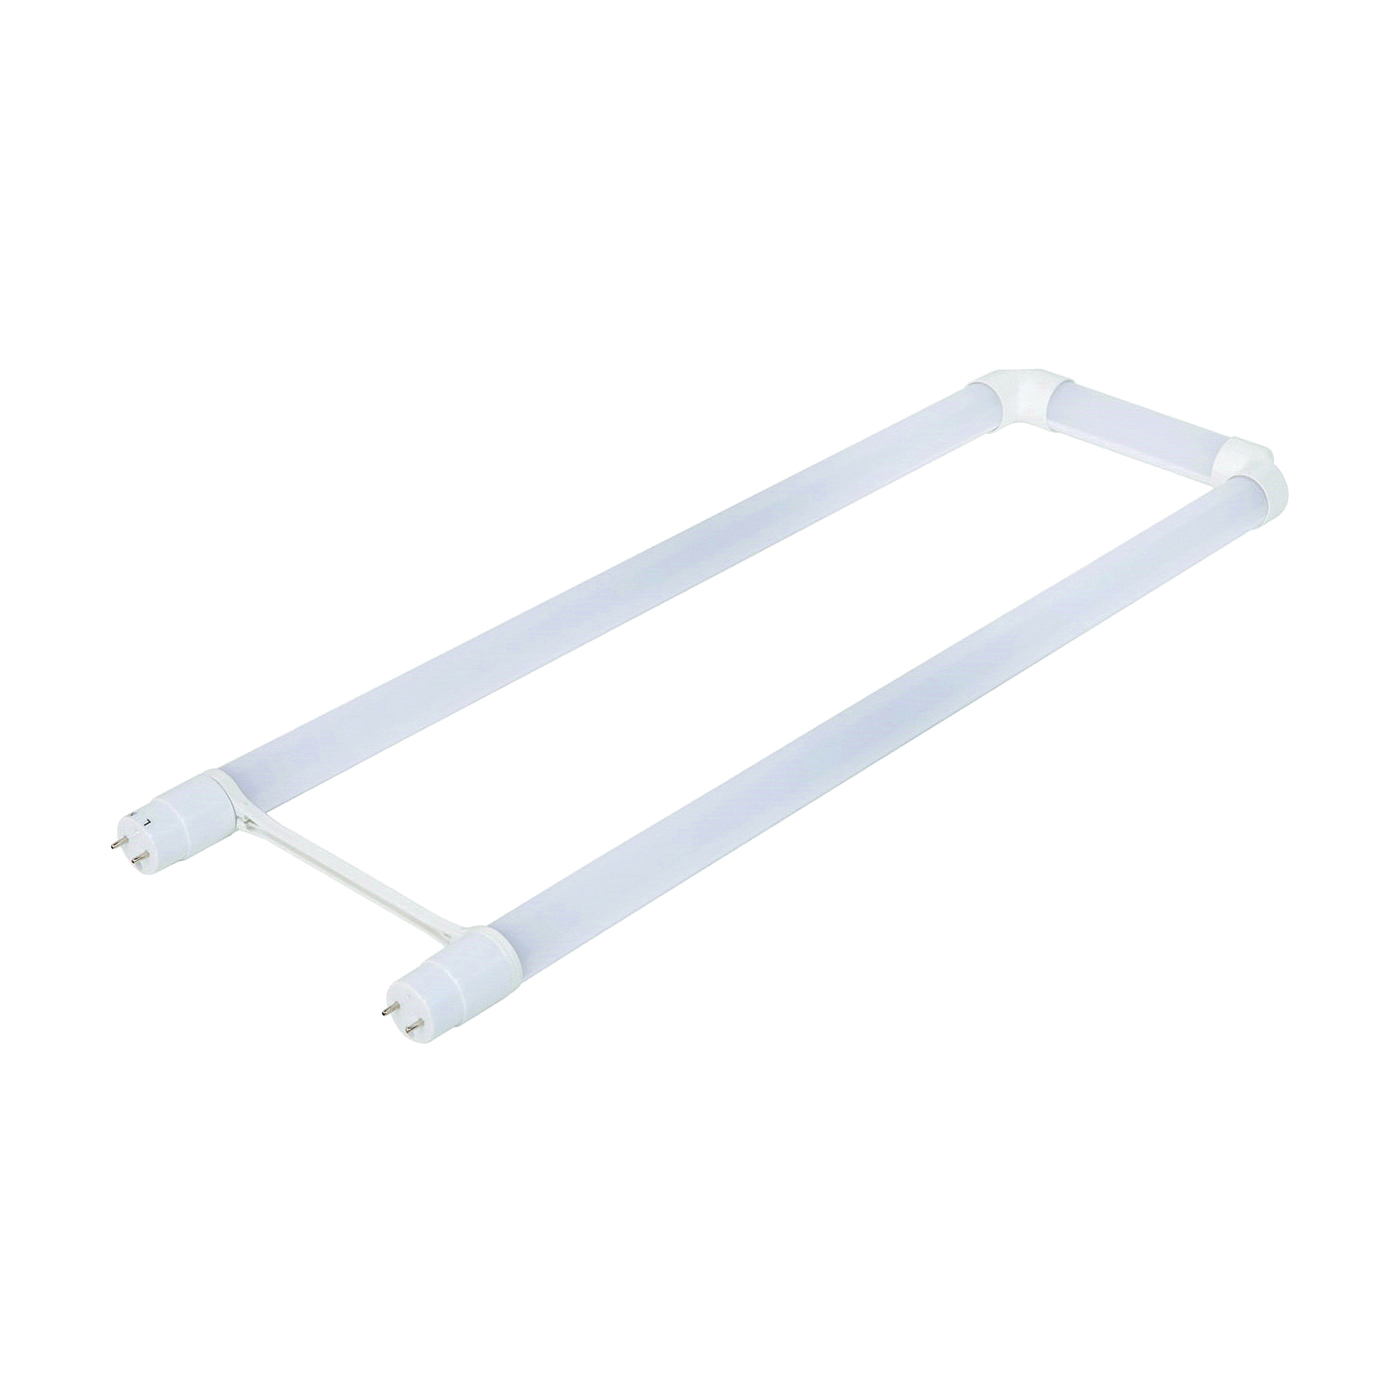 Picture of ETI 54293141 LED Tube, 15 W, G13 Lamp Base, T8 U-Bent Lamp, Cool White Light, 1800 Lumens, 4000 K Color Temp